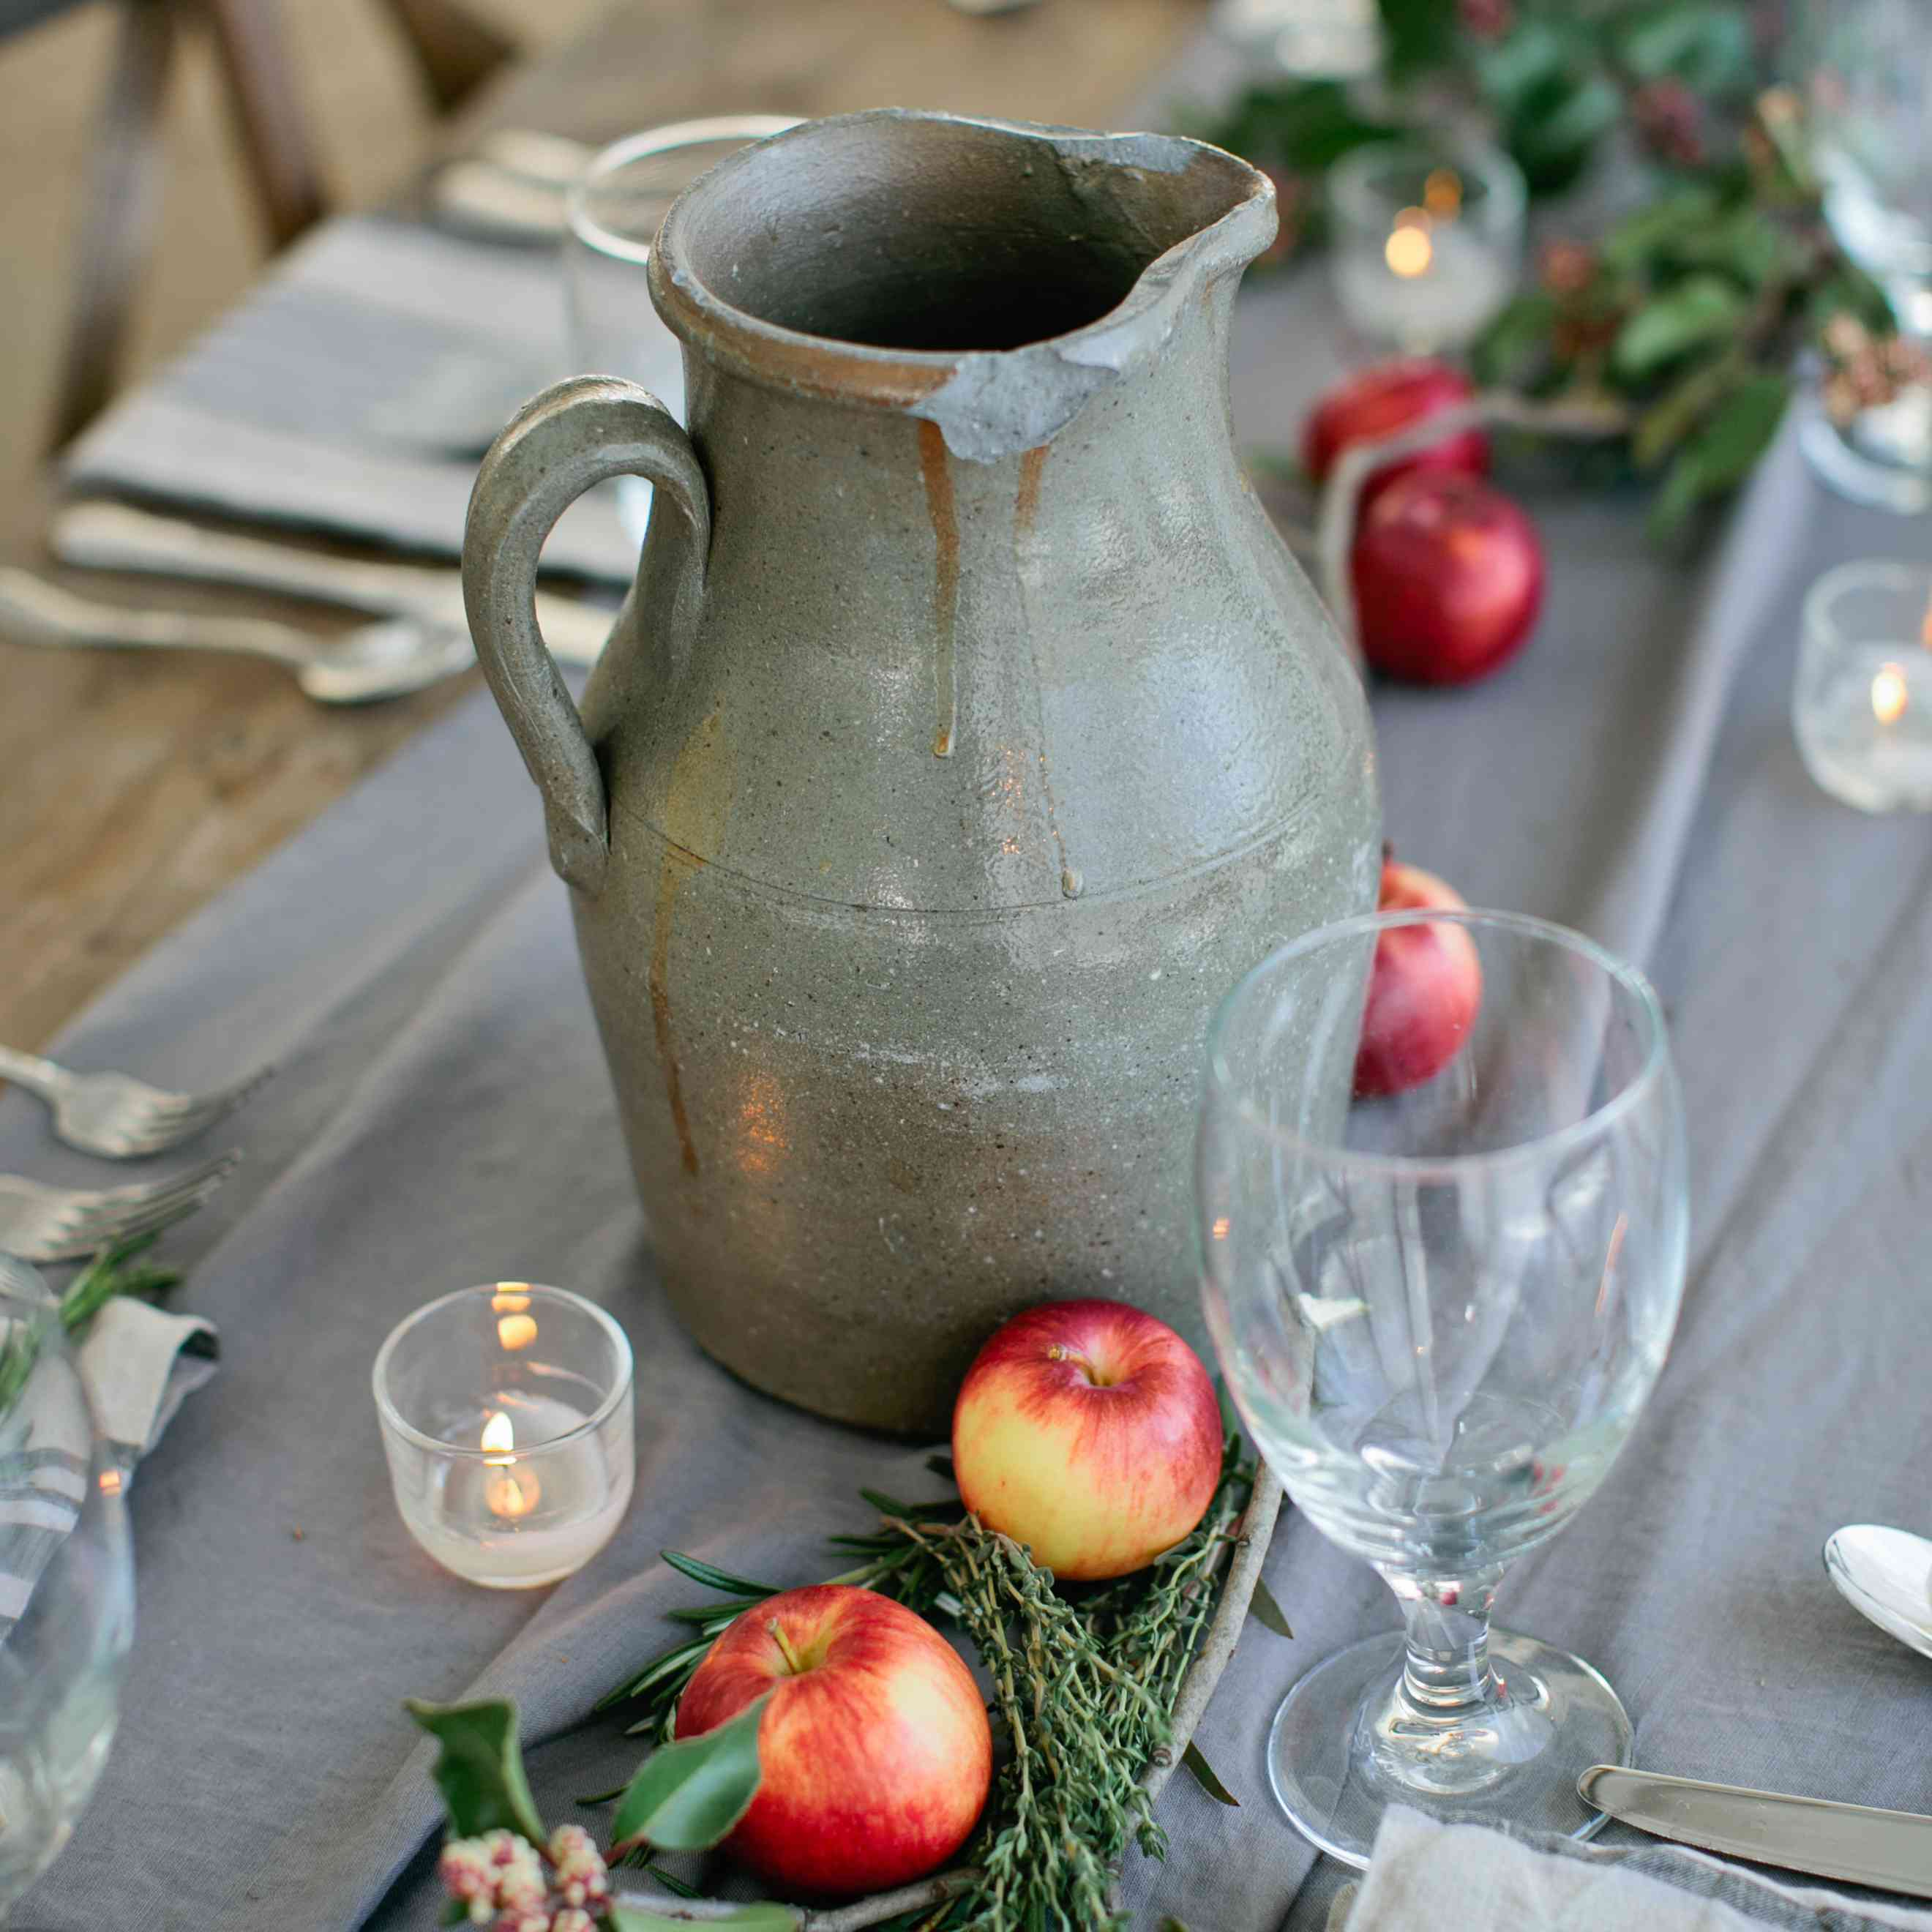 Apples with sprigs of greenery as a table centerpiece